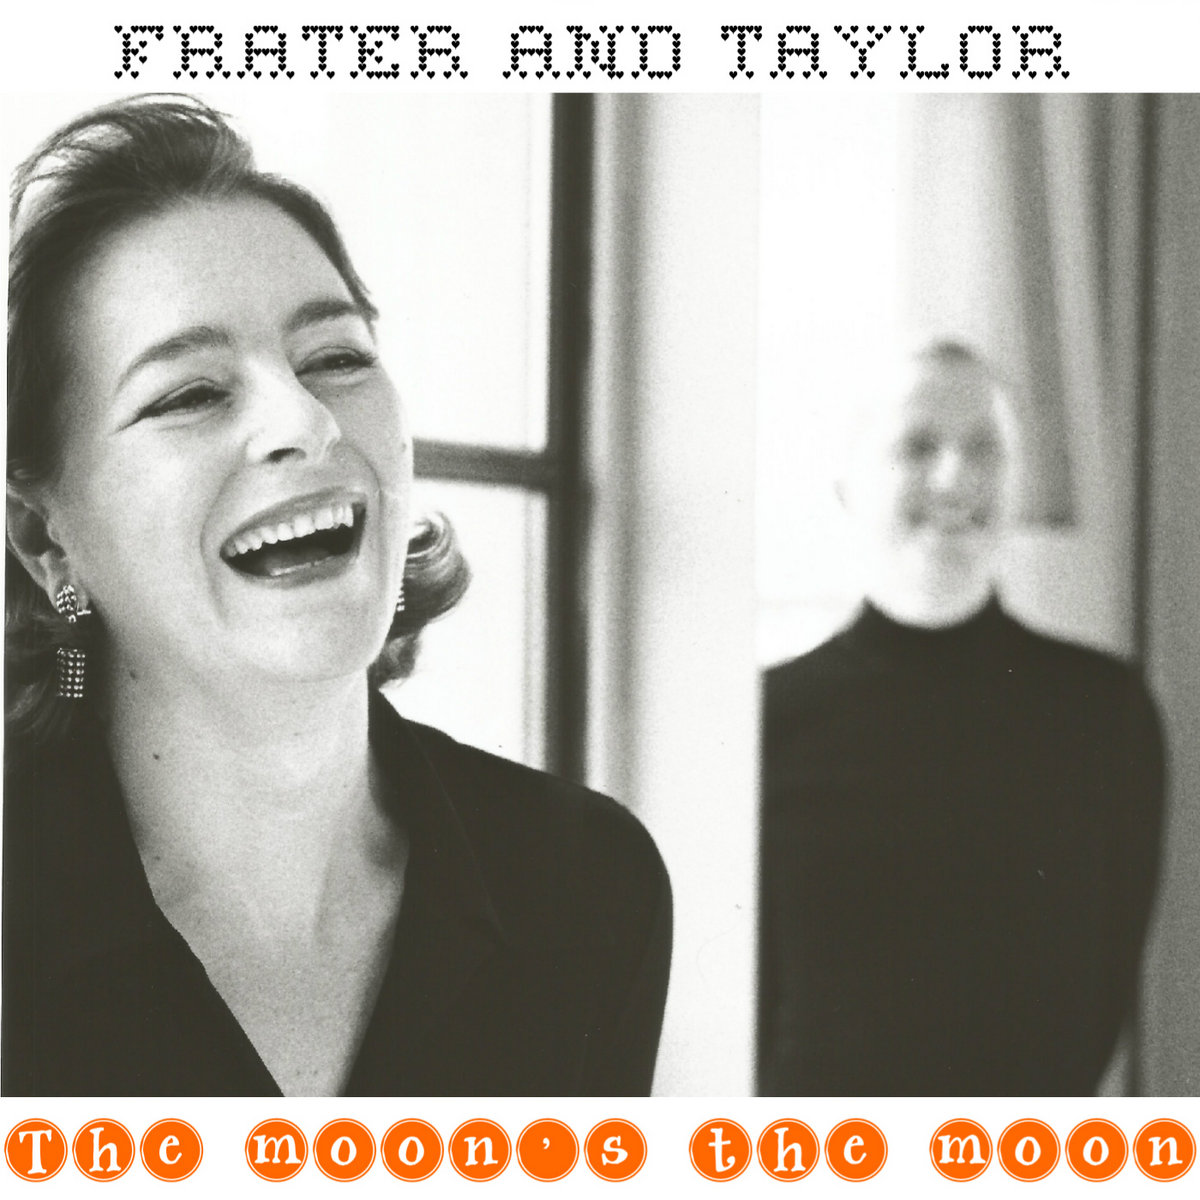 The moon's the moon by Frater and Taylor